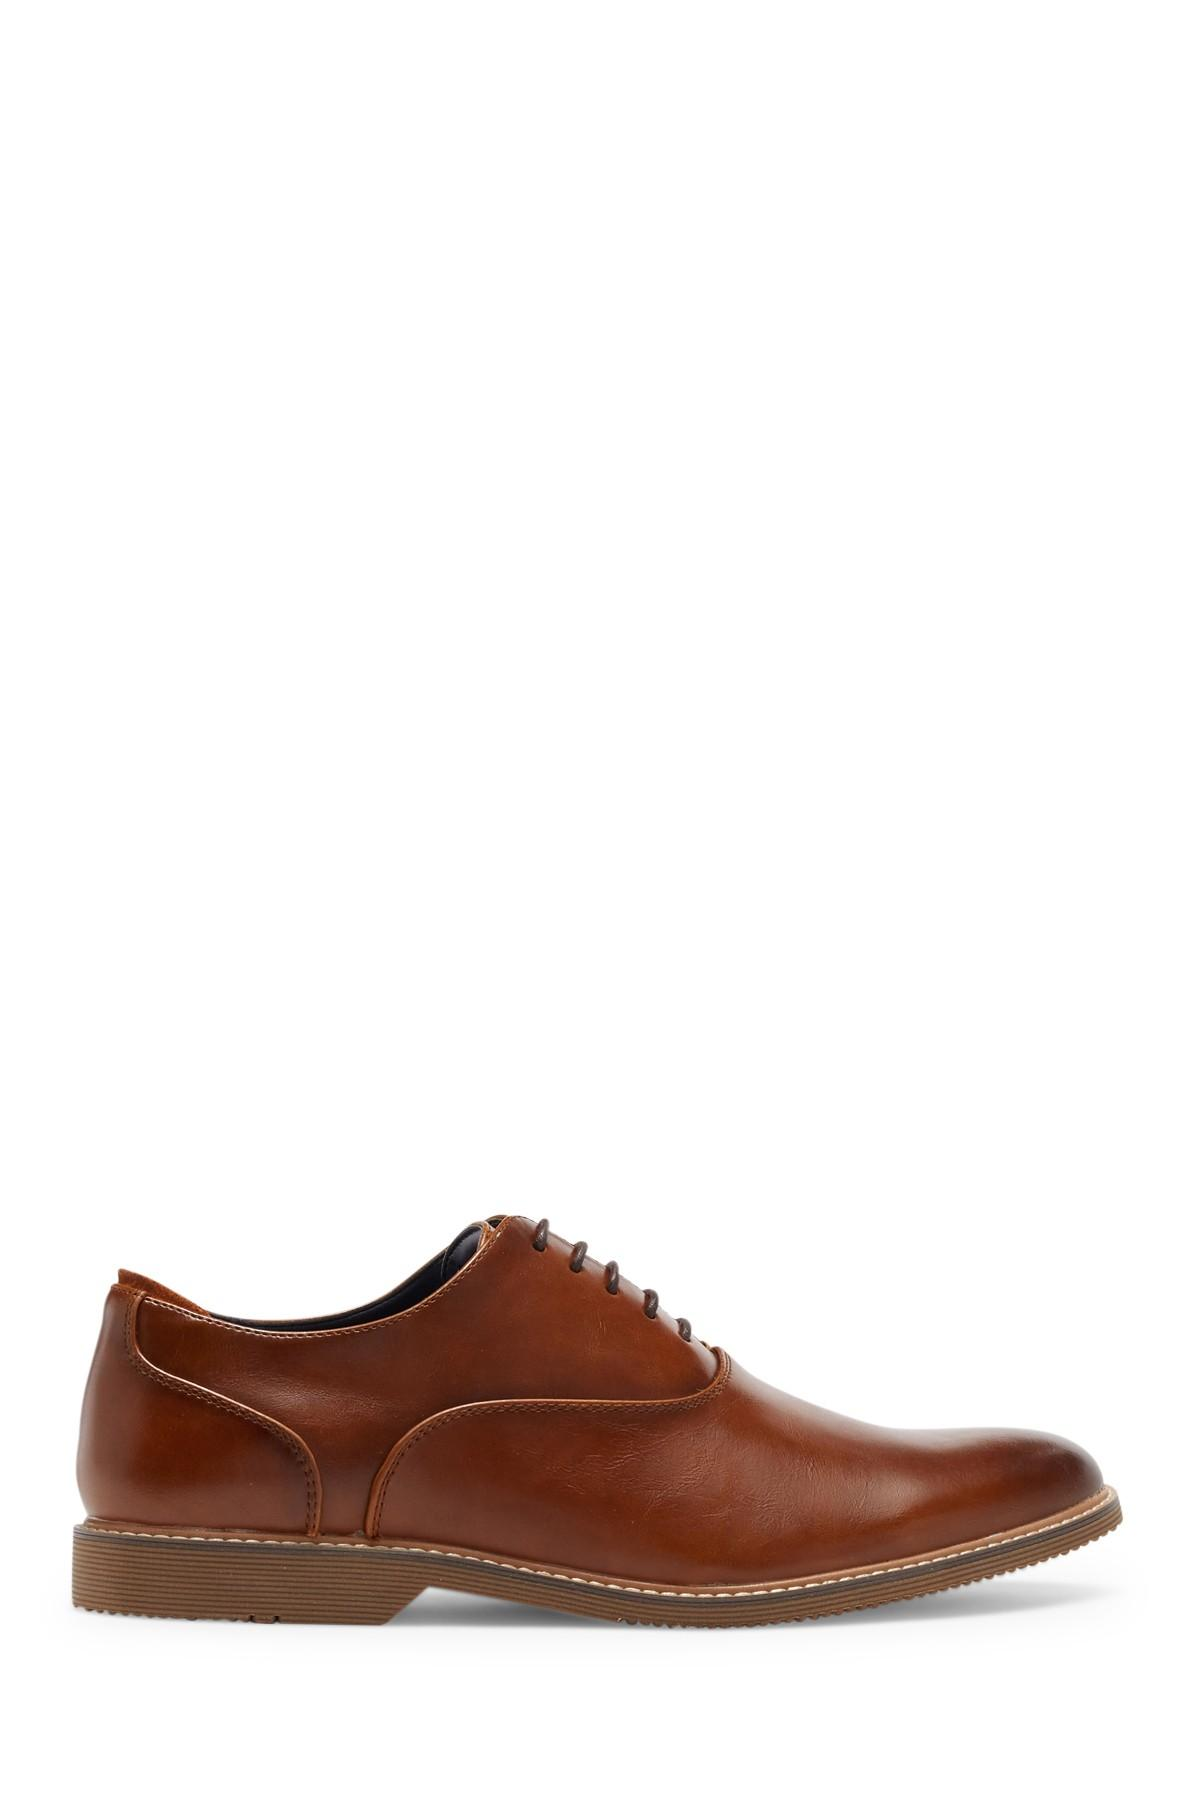 6bc55aac8c2 Steve Madden - Brown Ollie Leather Oxford for Men - Lyst. View fullscreen